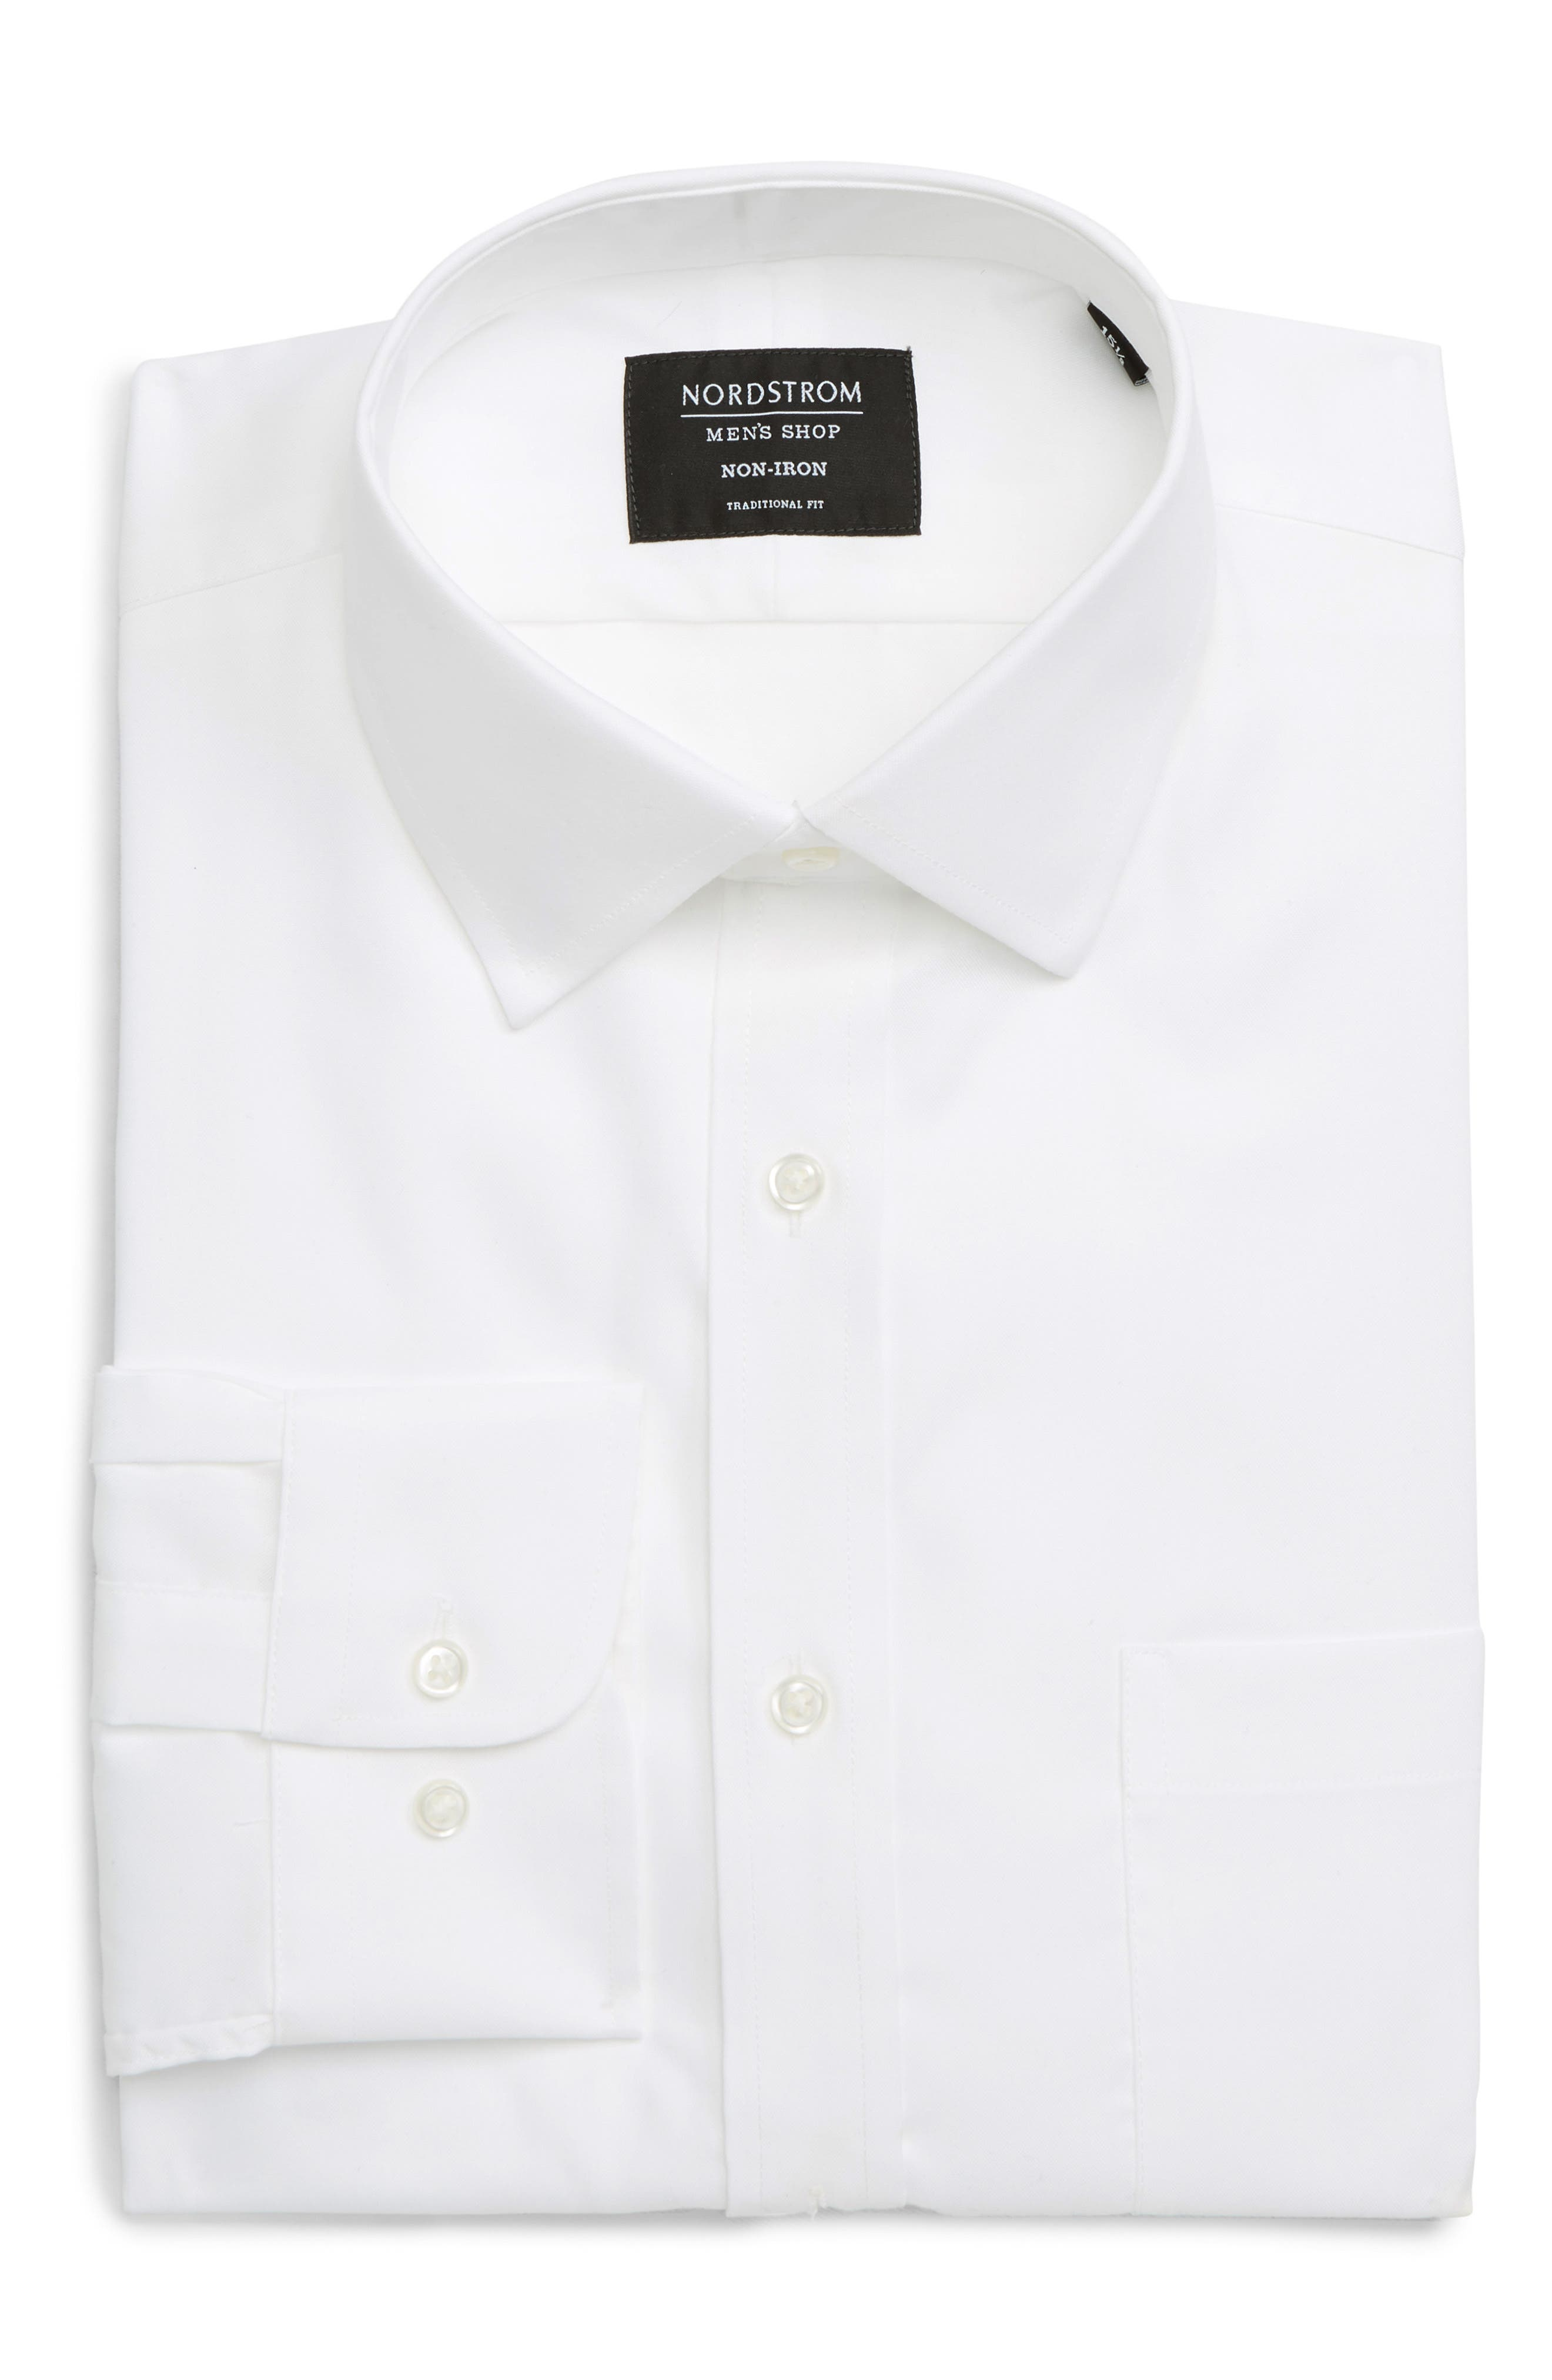 Signature wrinkle-resistant Supima cotton keeps you looking crisp and neat all day in a dress shirt tailored for versatility from solid twill. Style Name: Nordstrom Mens Shop Traditional Fit Non-Iron Dress Shirt. Style Number: 1083690. Available in stores.